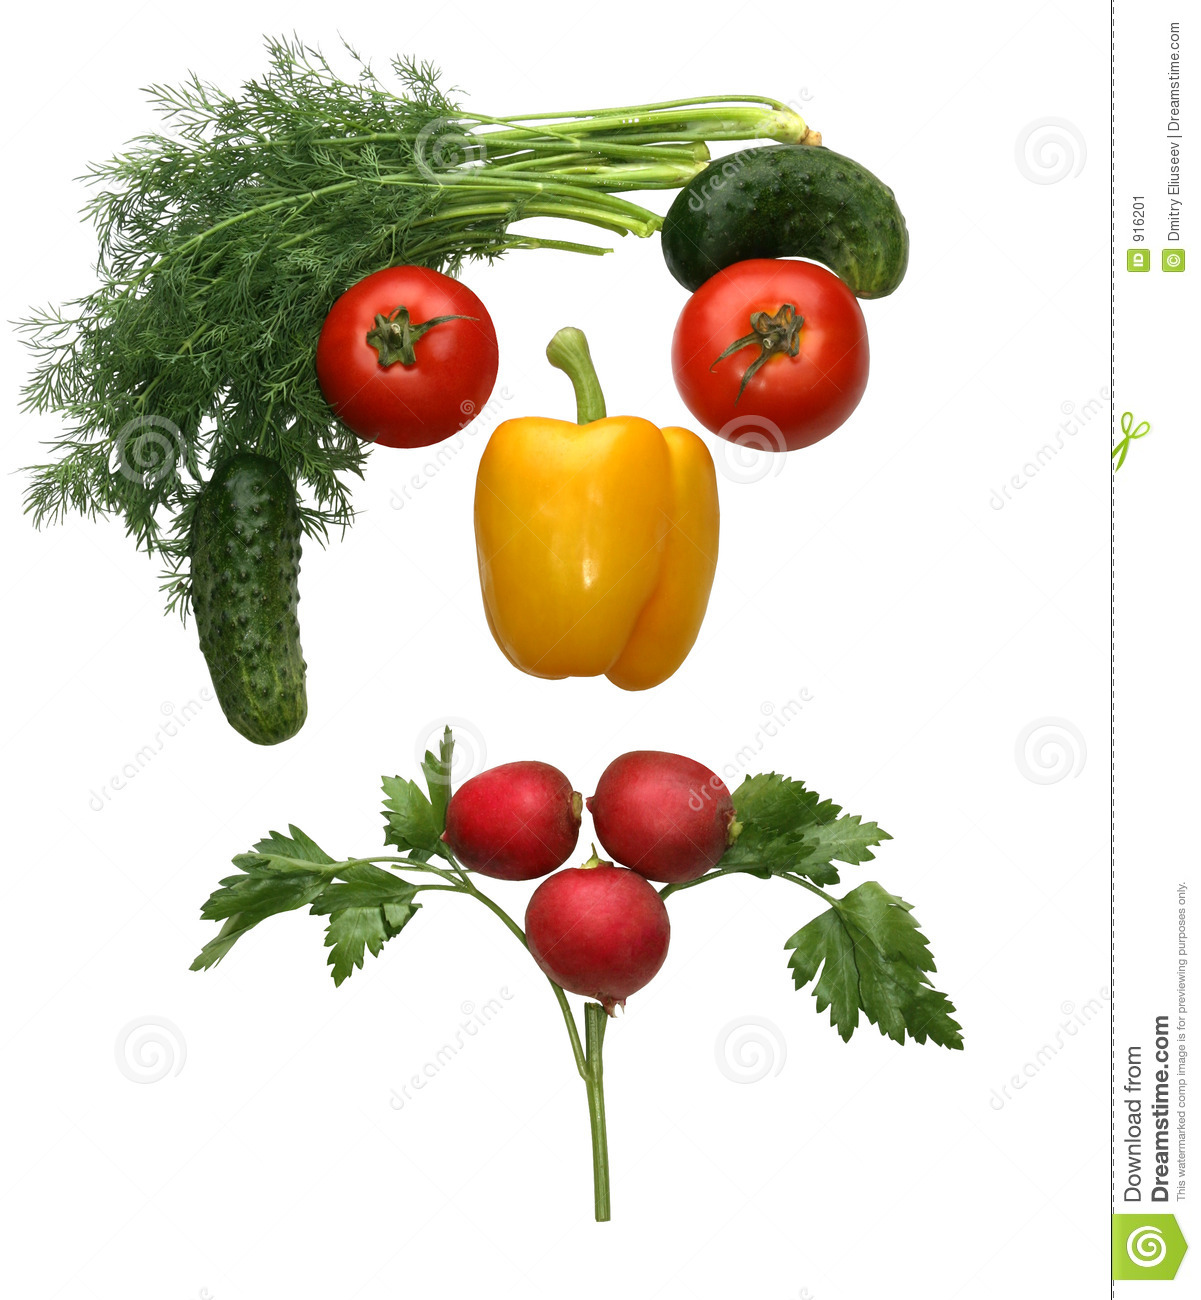 Face Made Out Of Different Vegetables Stock Image - Image: 916201